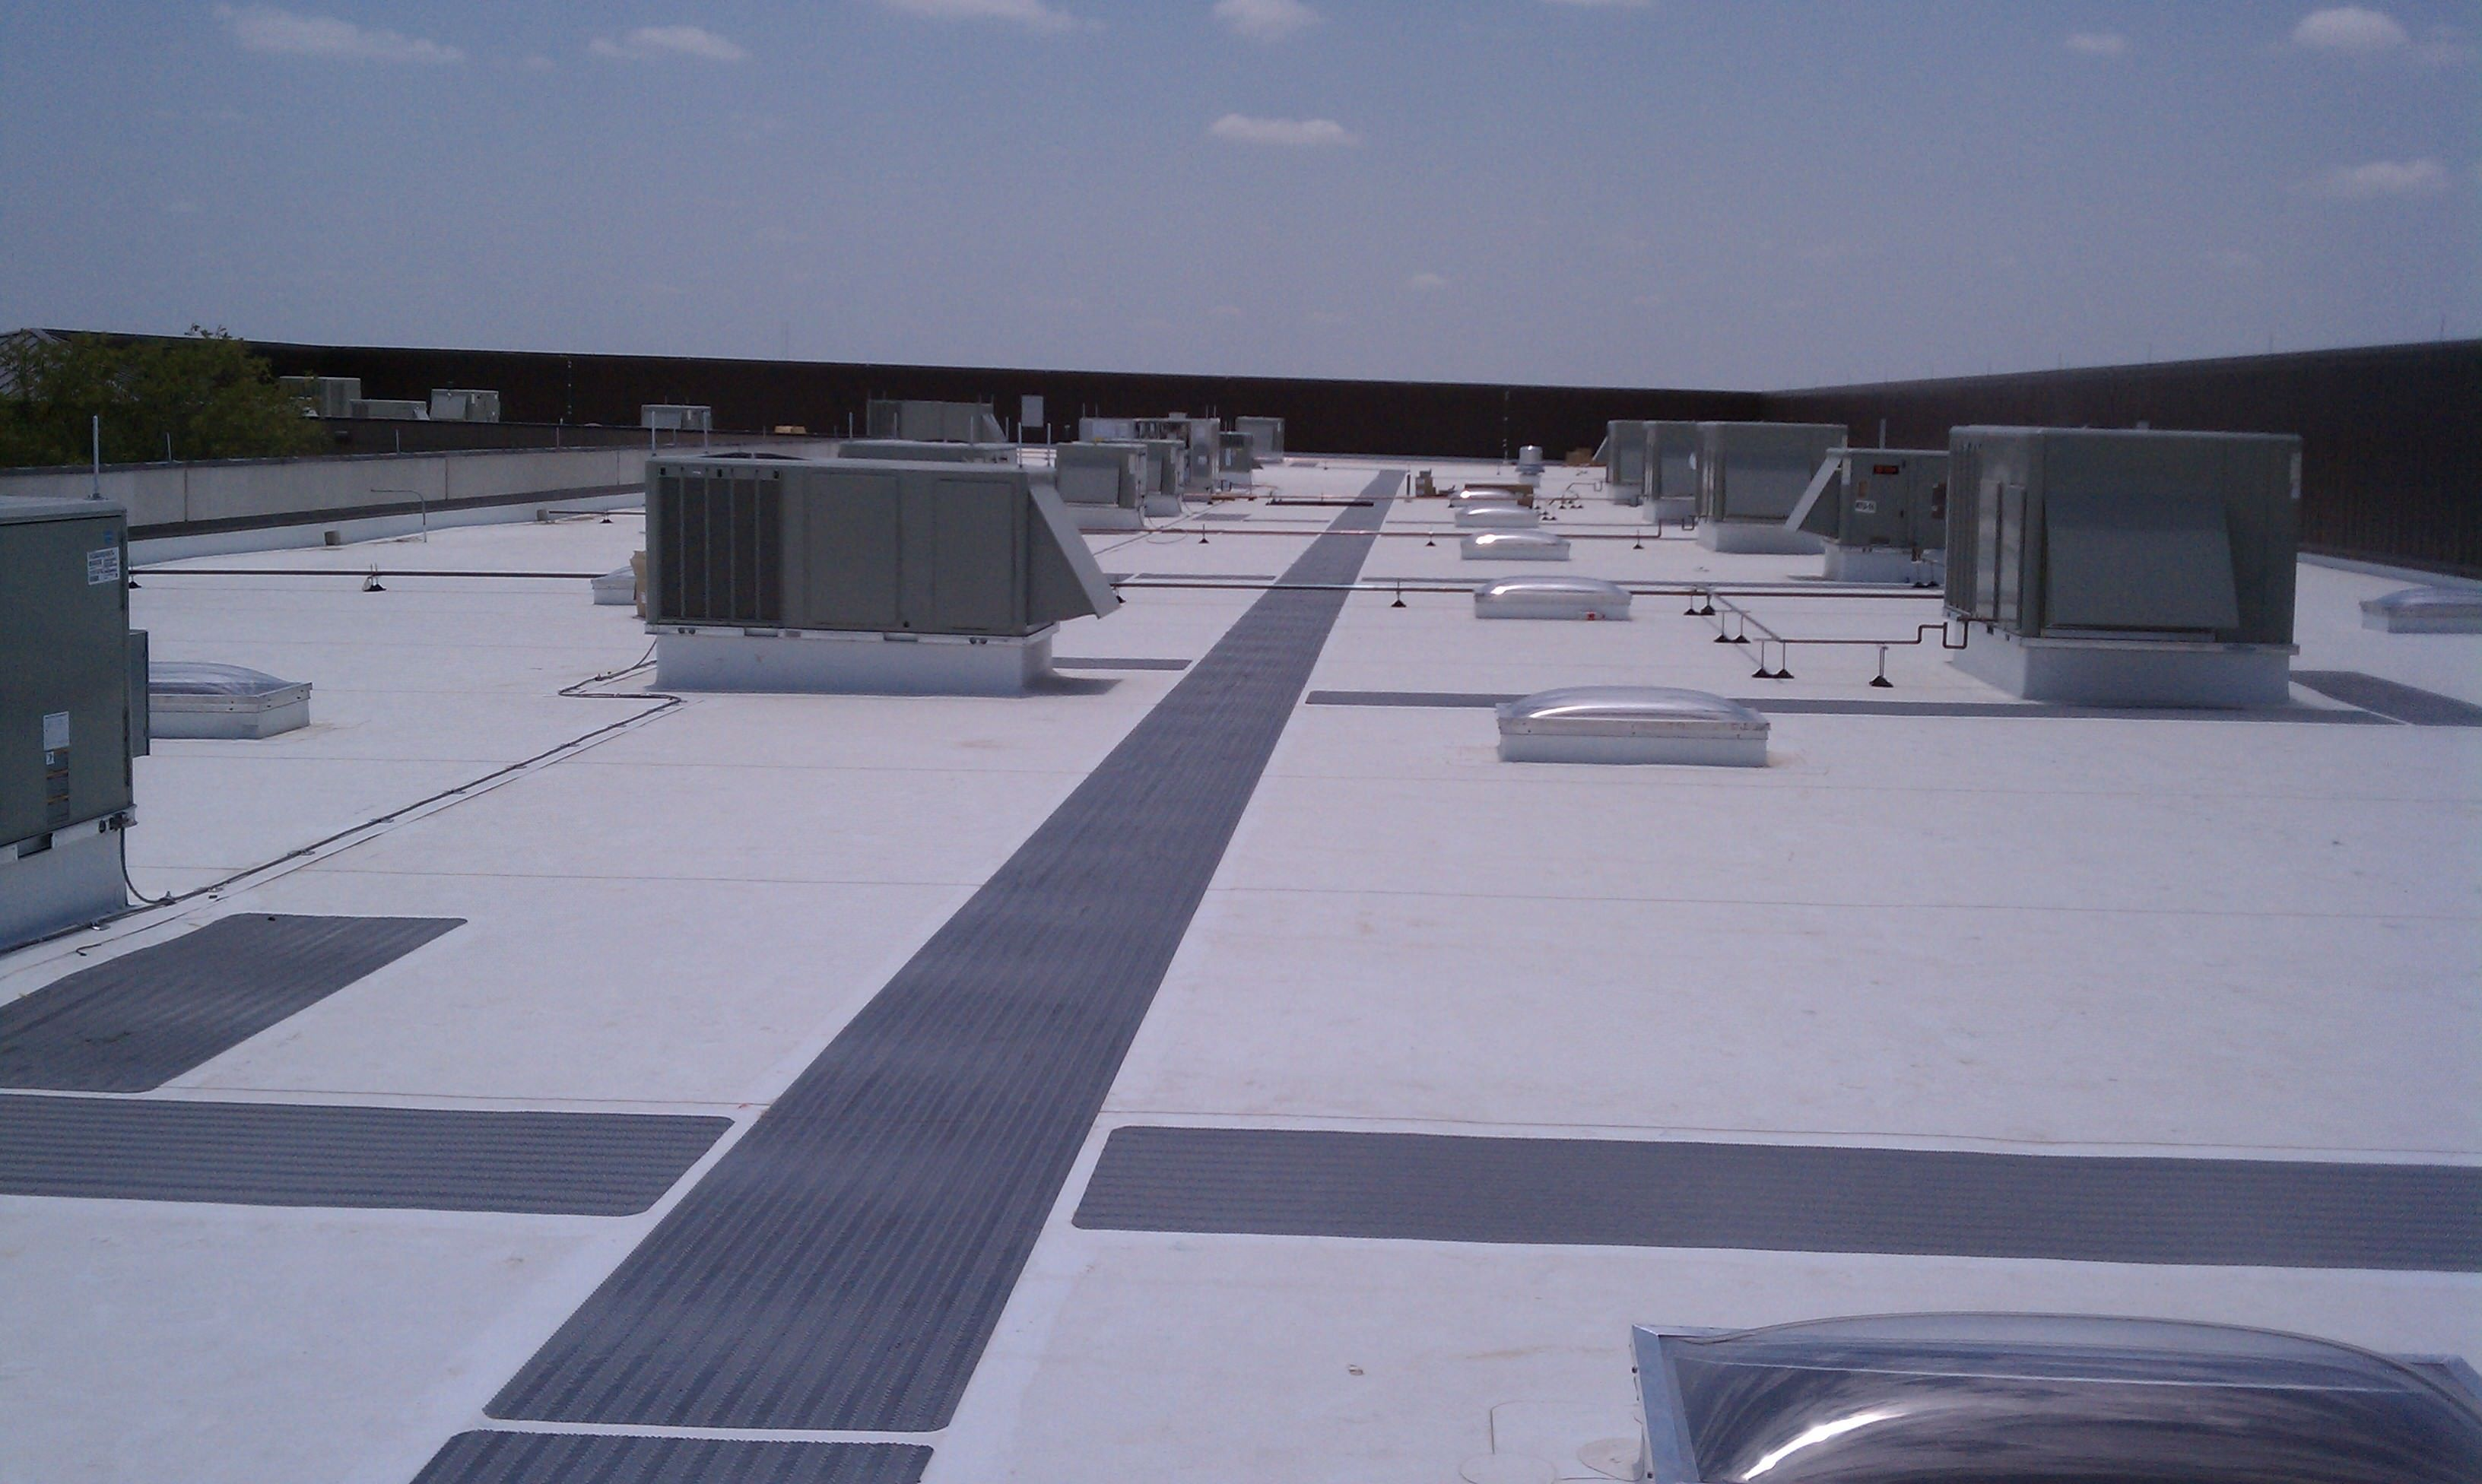 Roof Pads Walking Amp Tpo Flat Roof With Walk Pads